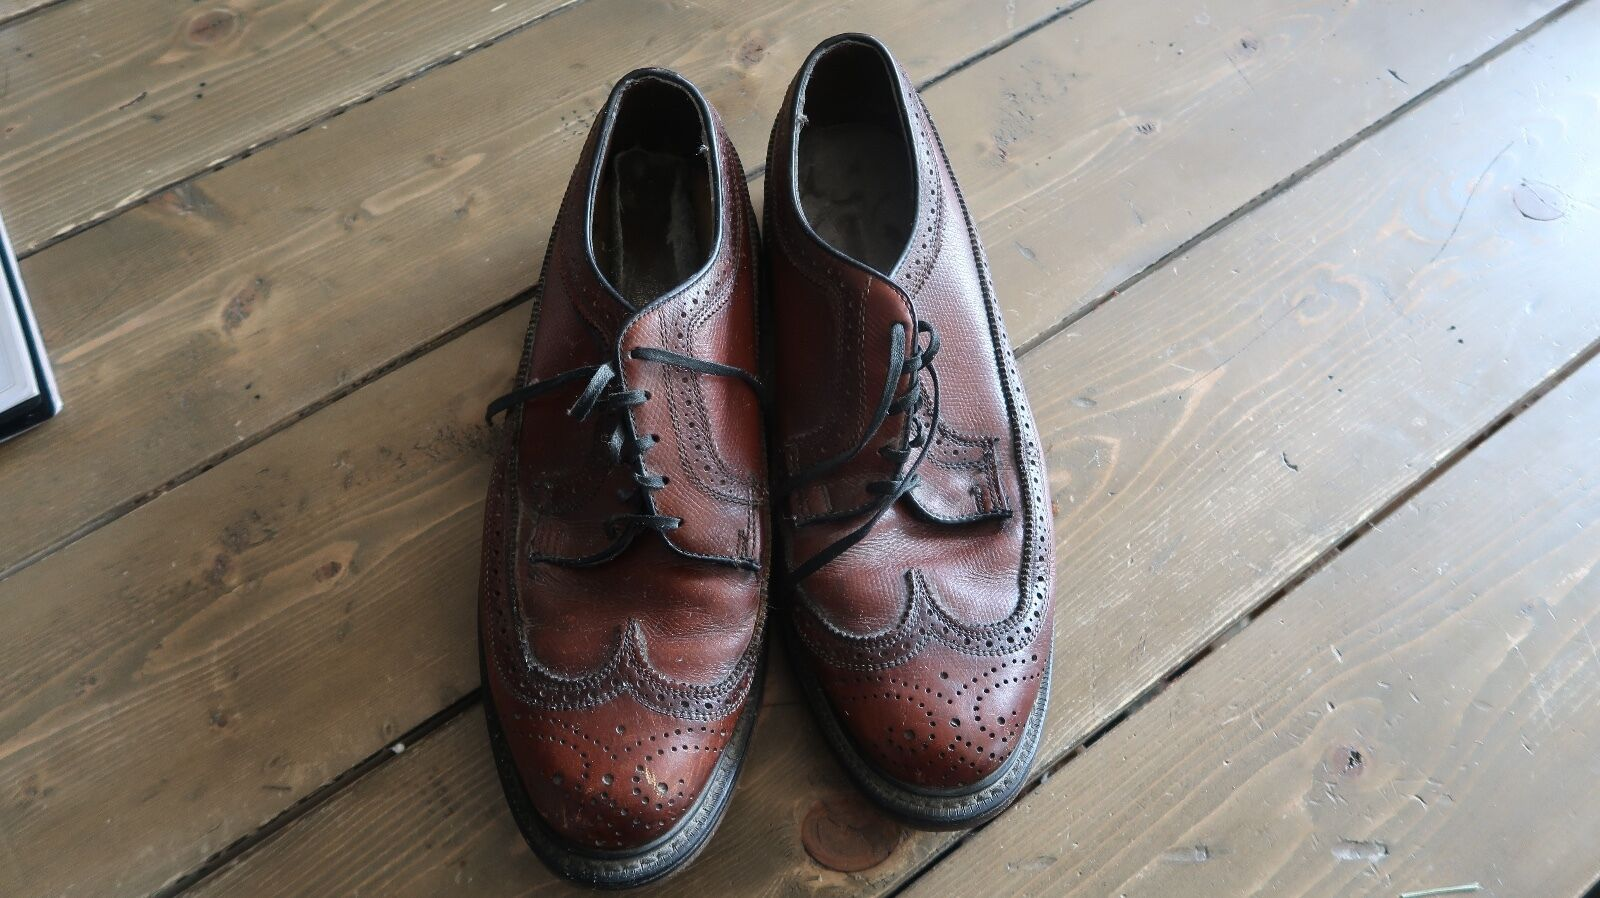 Vintage O'Sullivan Men's Tan Wing Tip Wingtips shoes Size 8 1 2 D